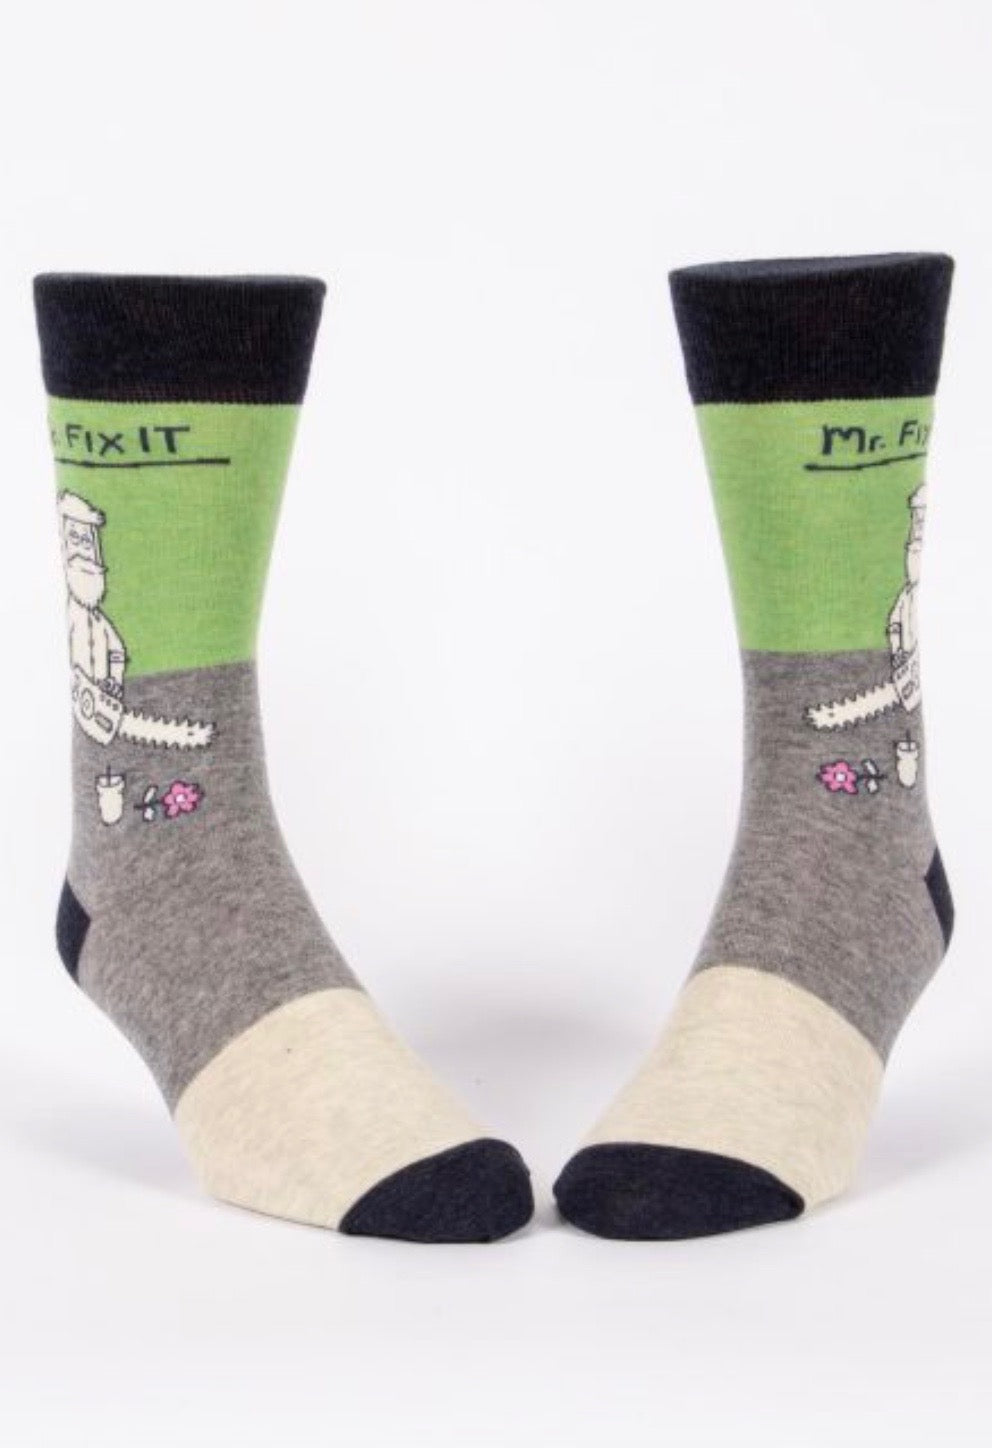 blue-q-SW807-mr-fix-it-mens-crew-socks-green-grey